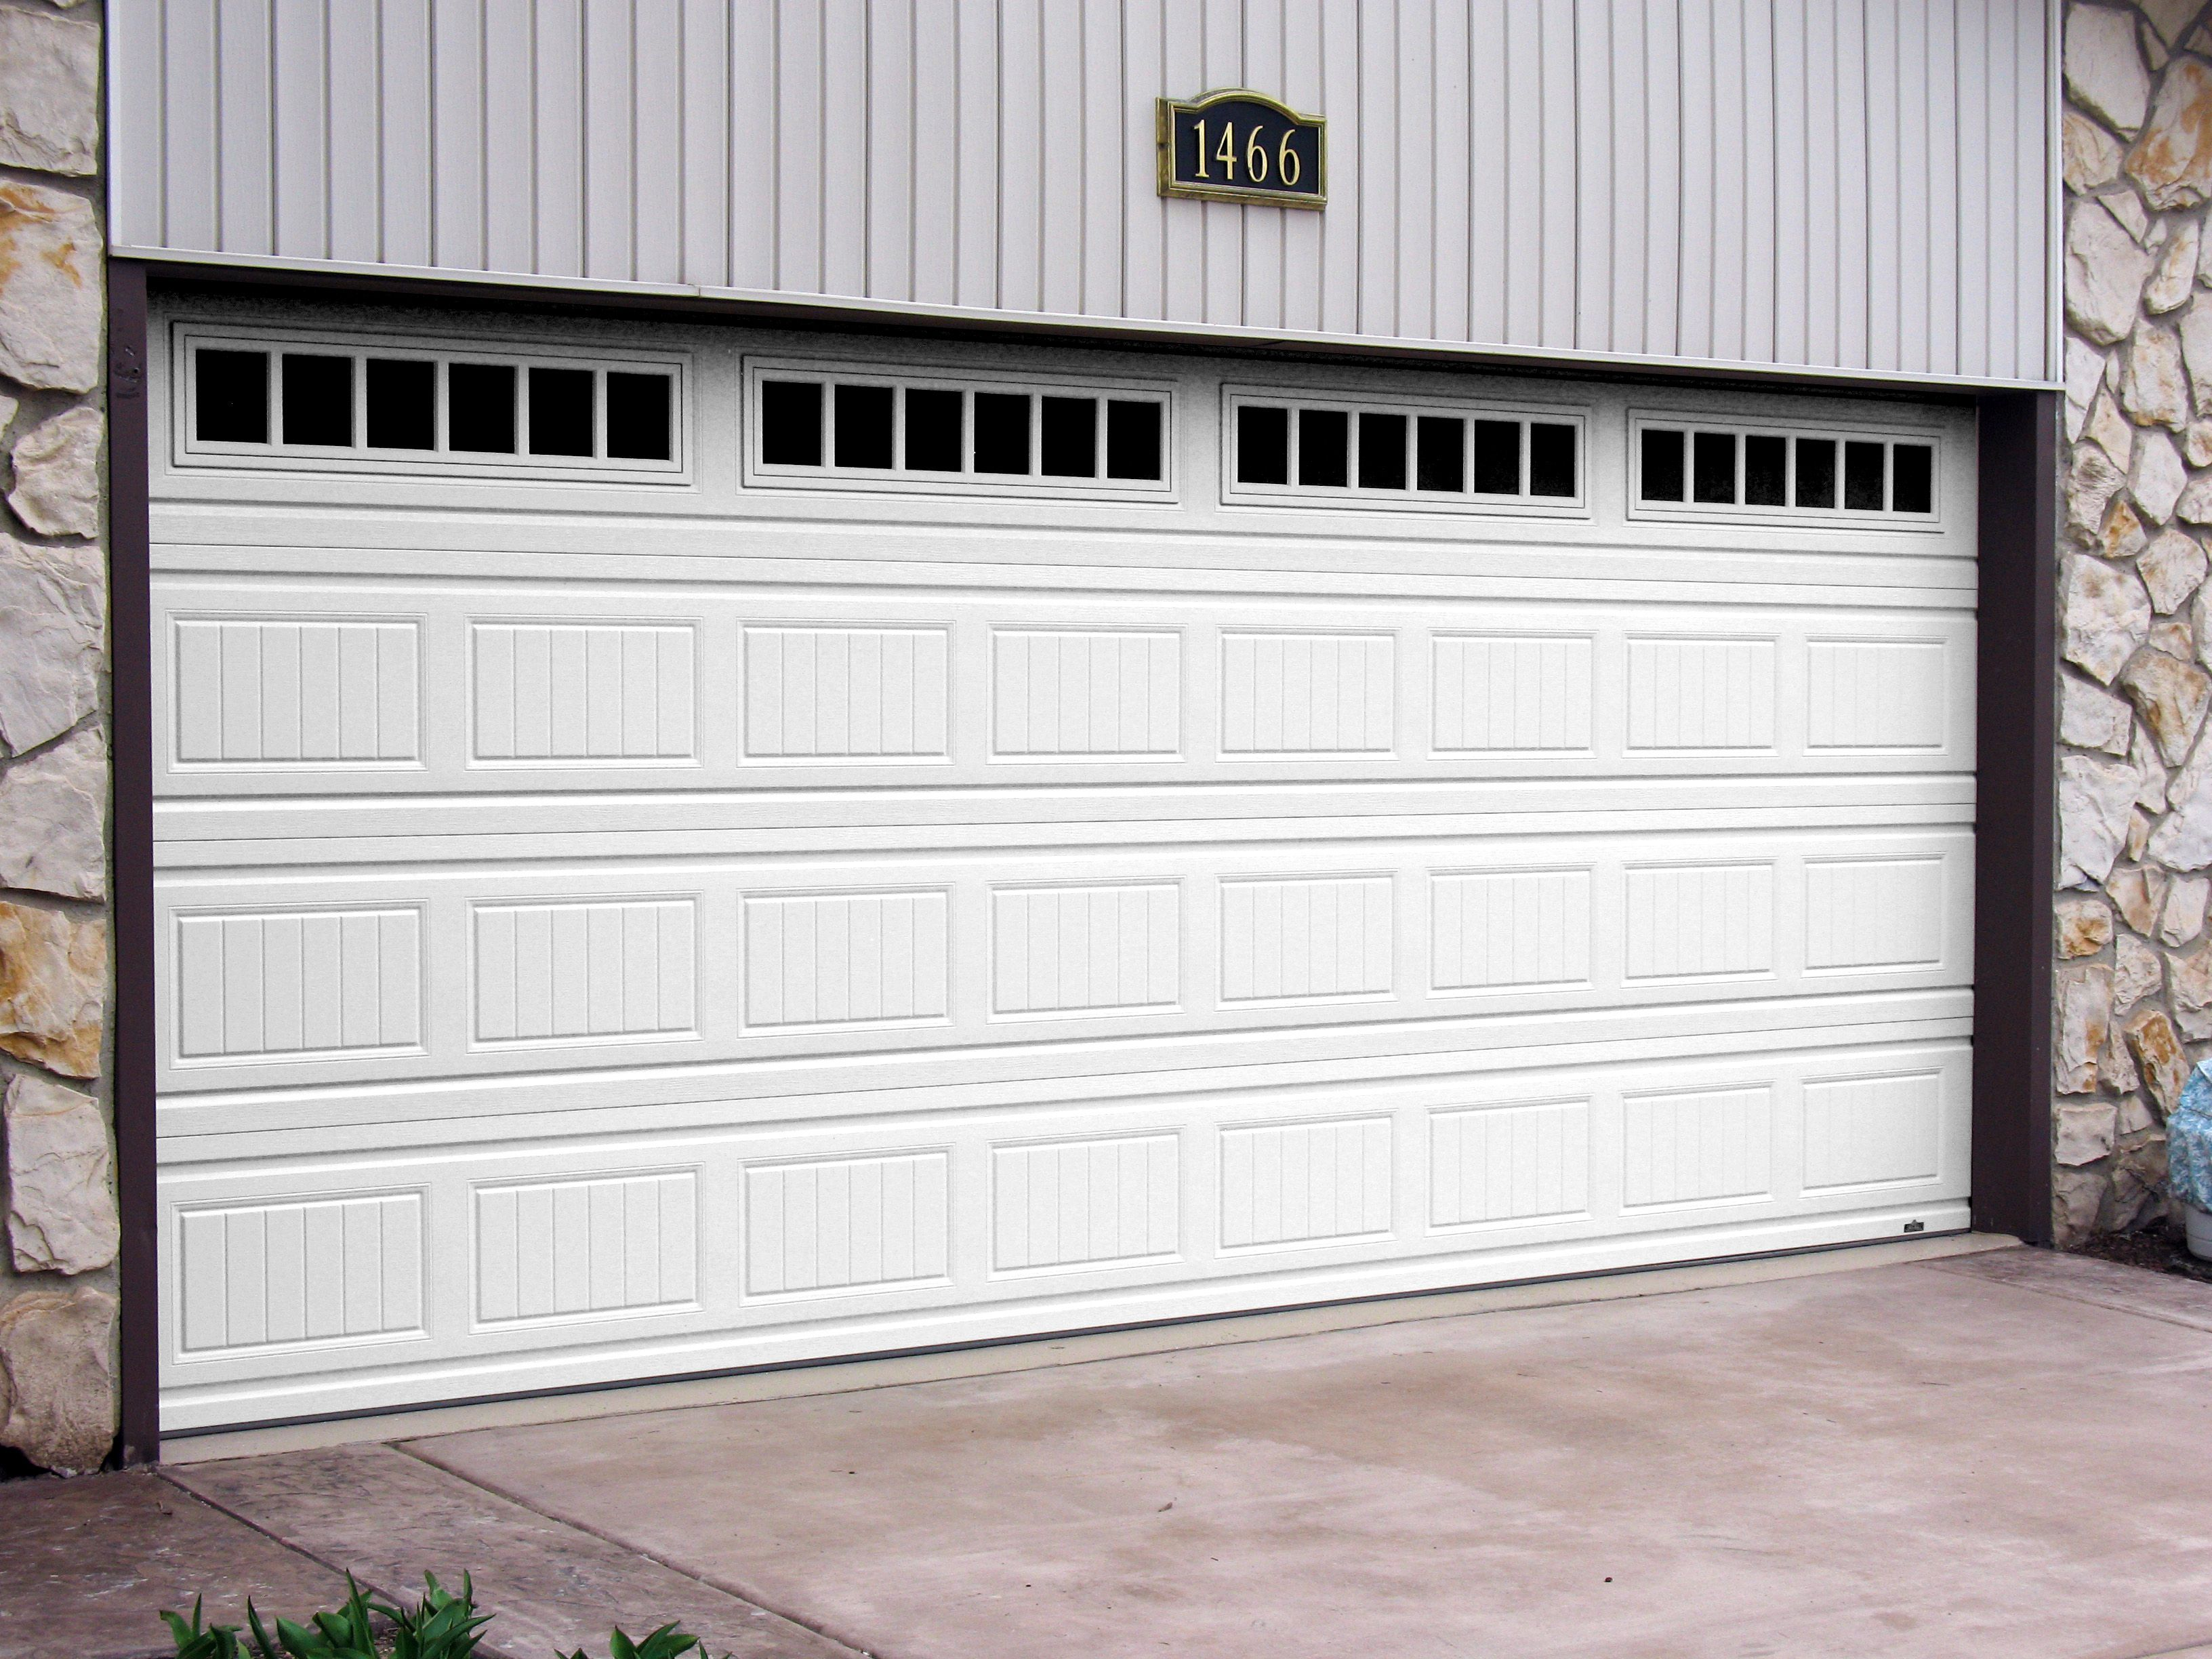 opener tucson repair door az phoenix g doors reviews las denver garage